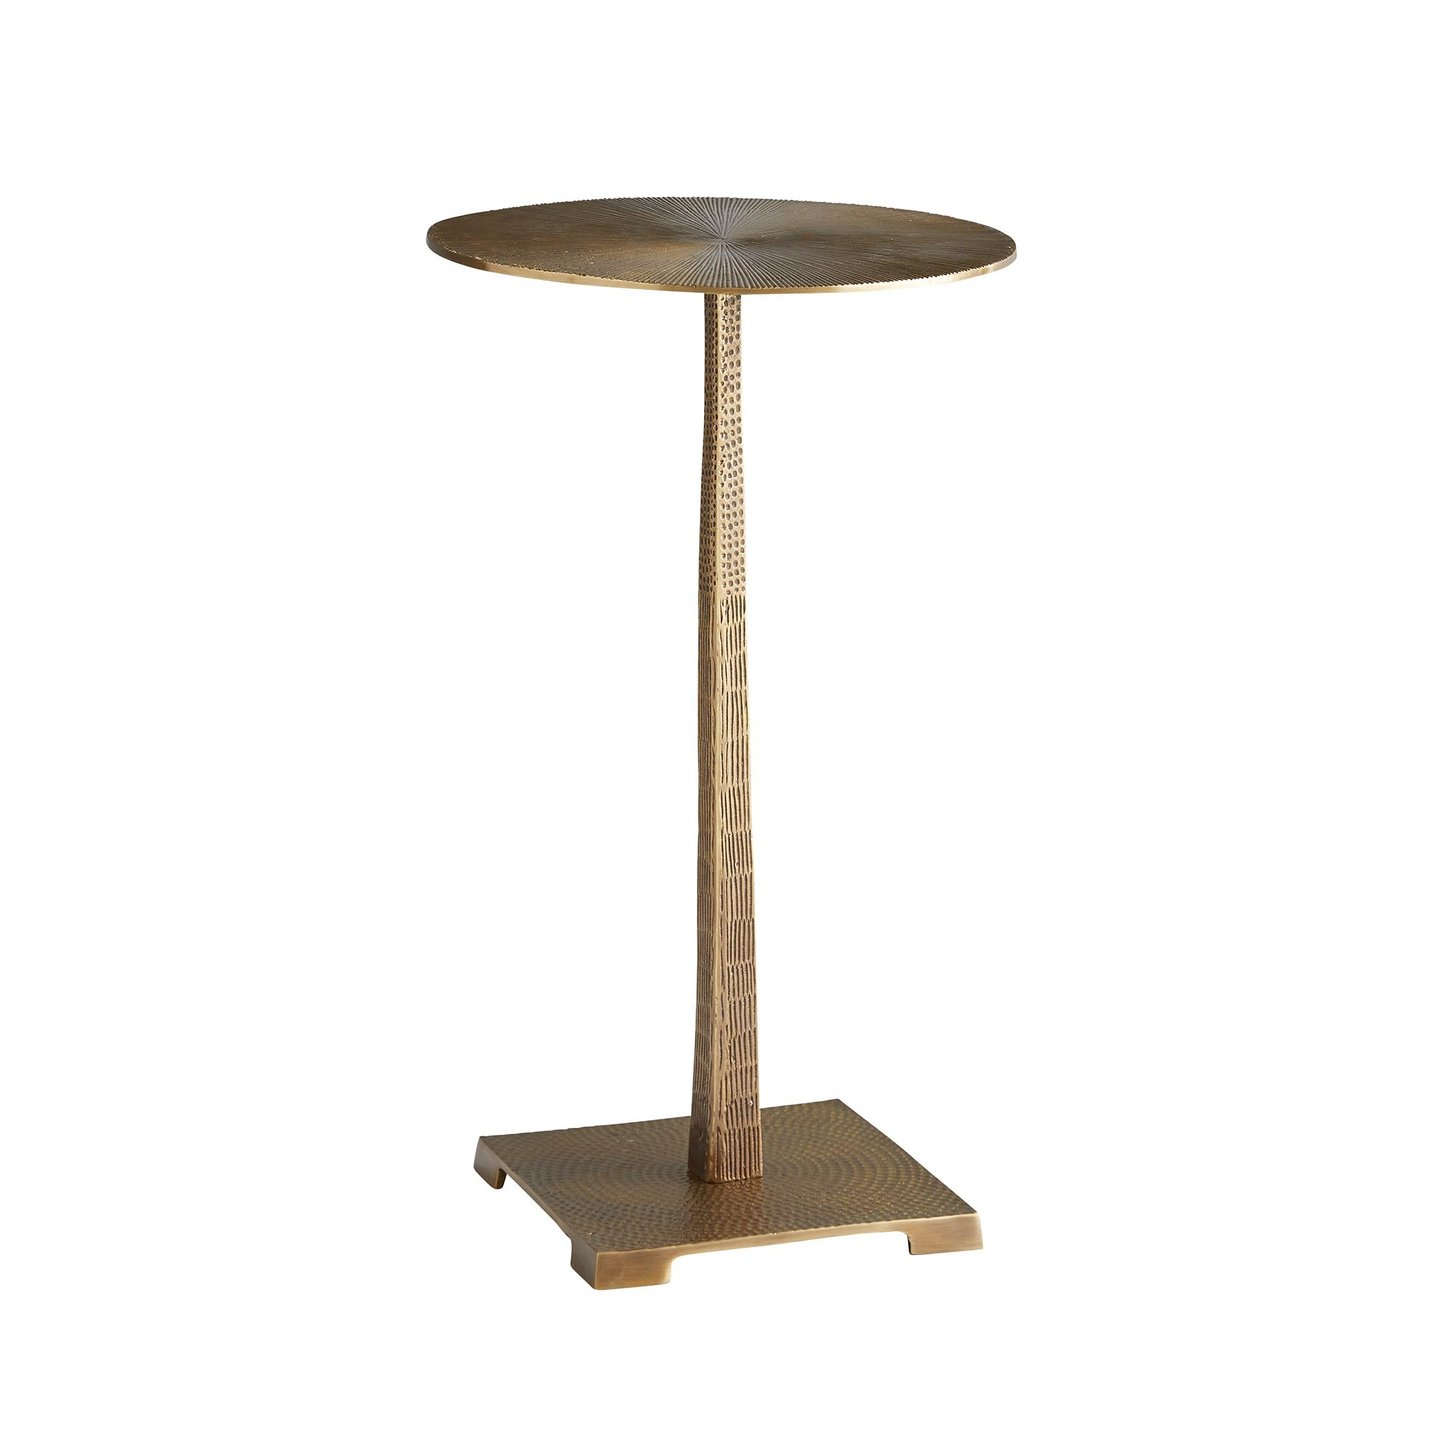 arteriors home otelia accent table vintage brass antique numeral wall clock metal wine rack furniture safavieh storage bench broyhill end with usb small decorative side tables